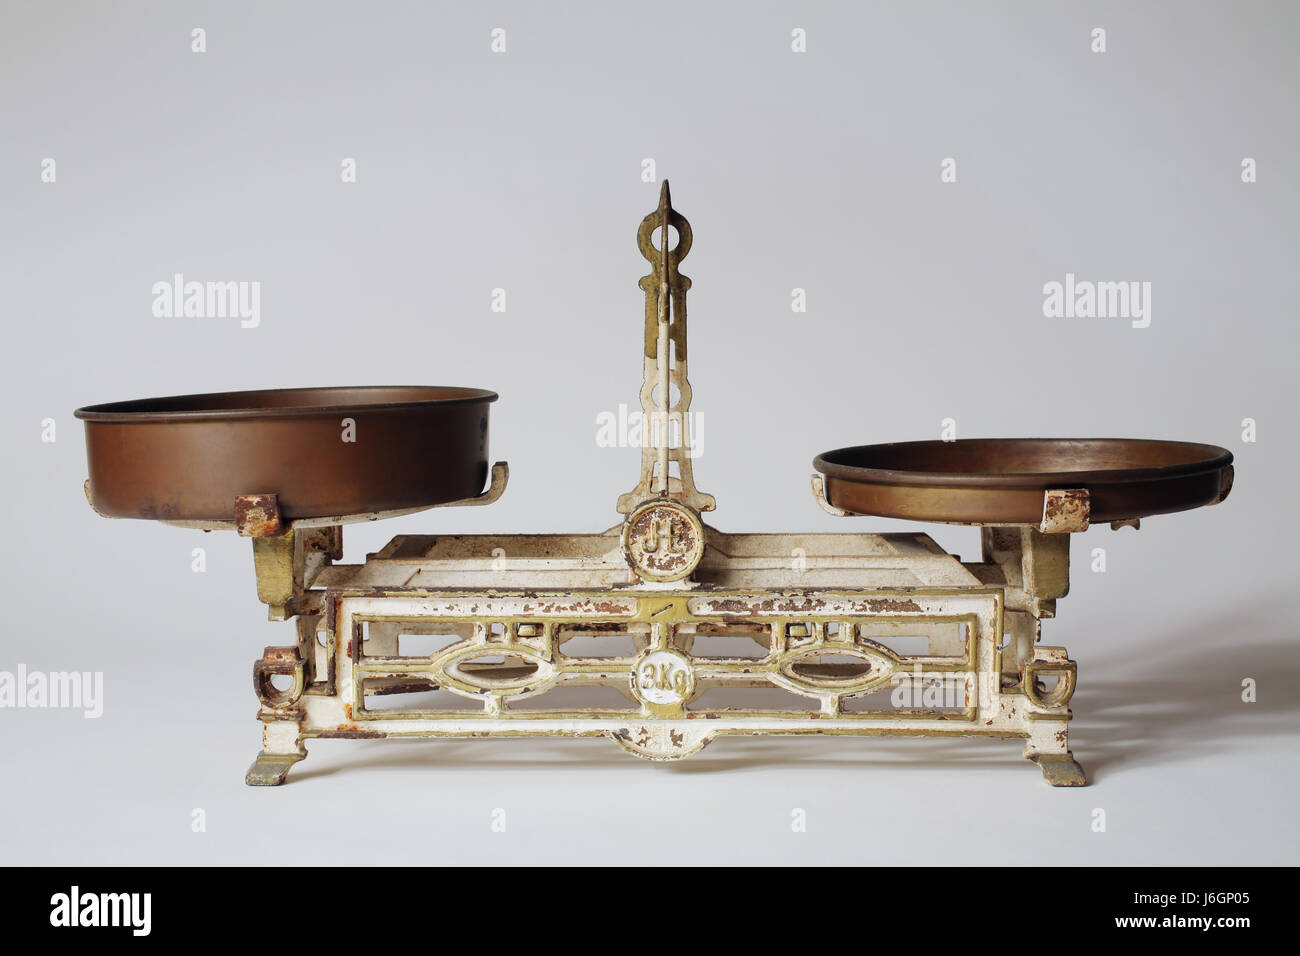 rusty equilibrium weigh scales kilogram old pointer iron rusty equilibrium - Stock Image